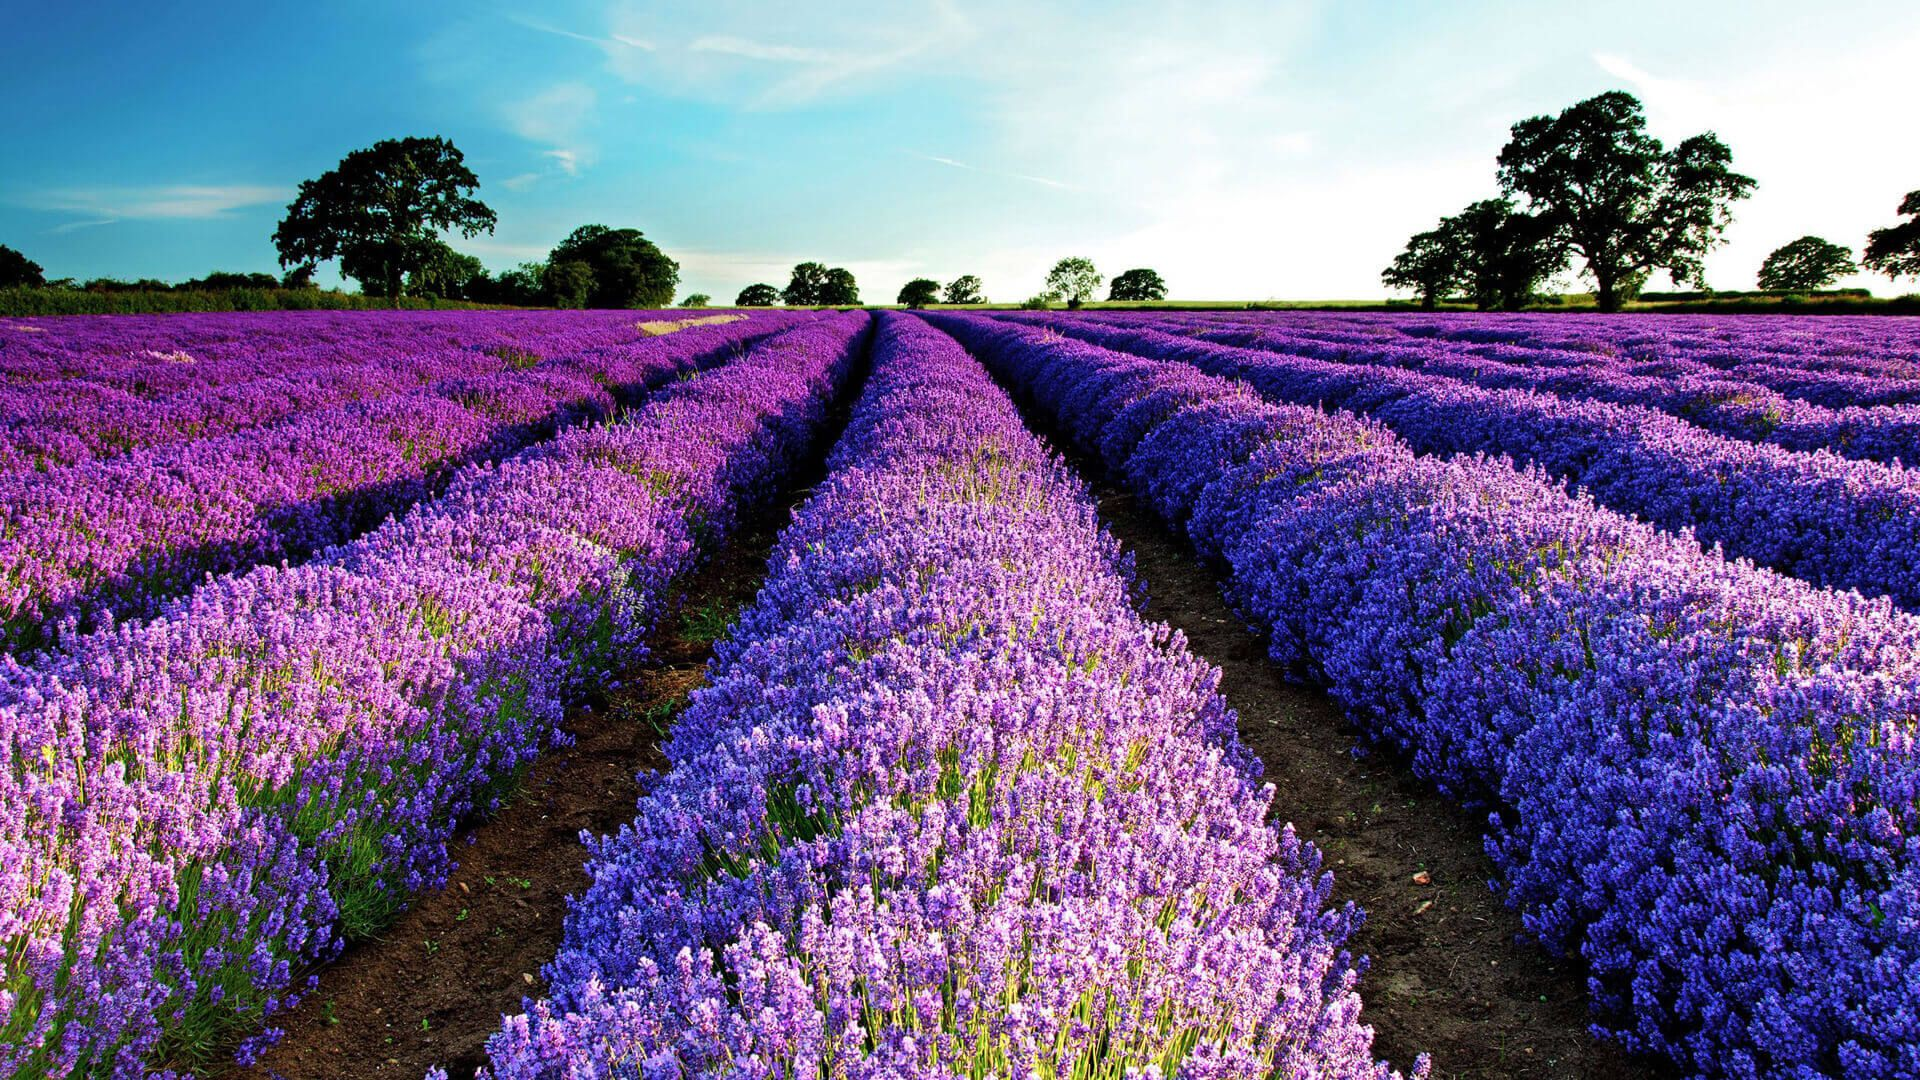 The Wallpaper Of Lavender Field